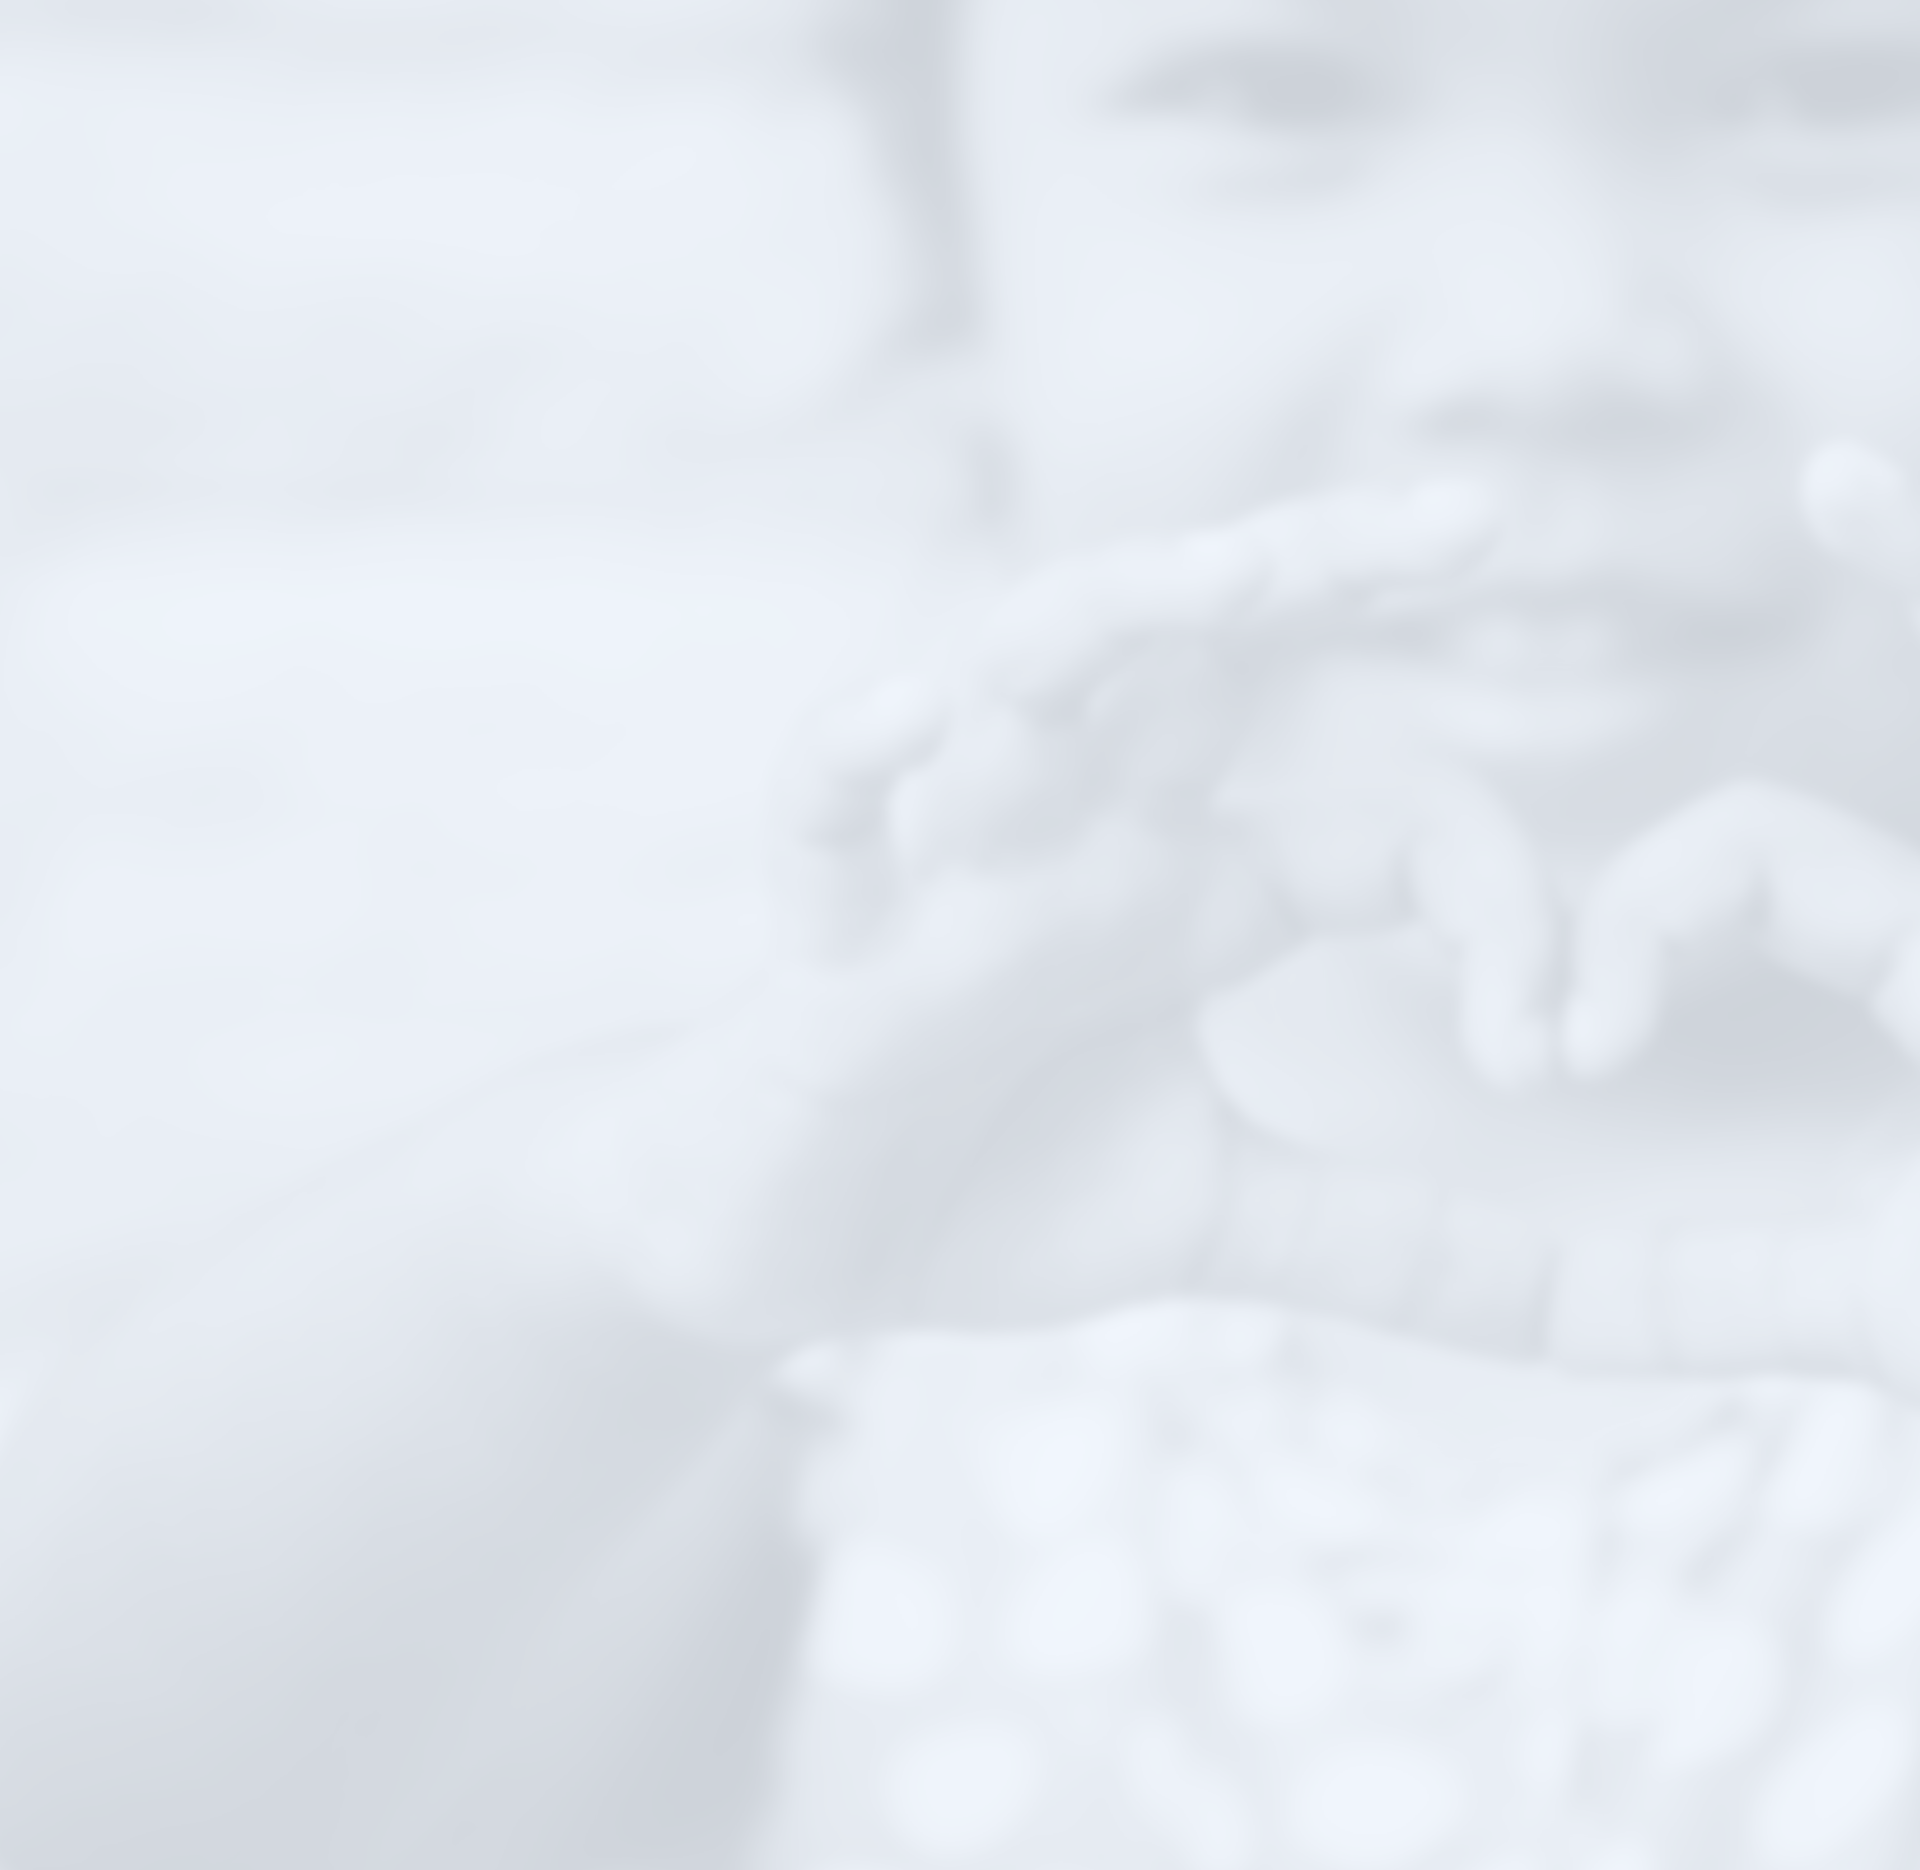 Child making heart with hands image for website background